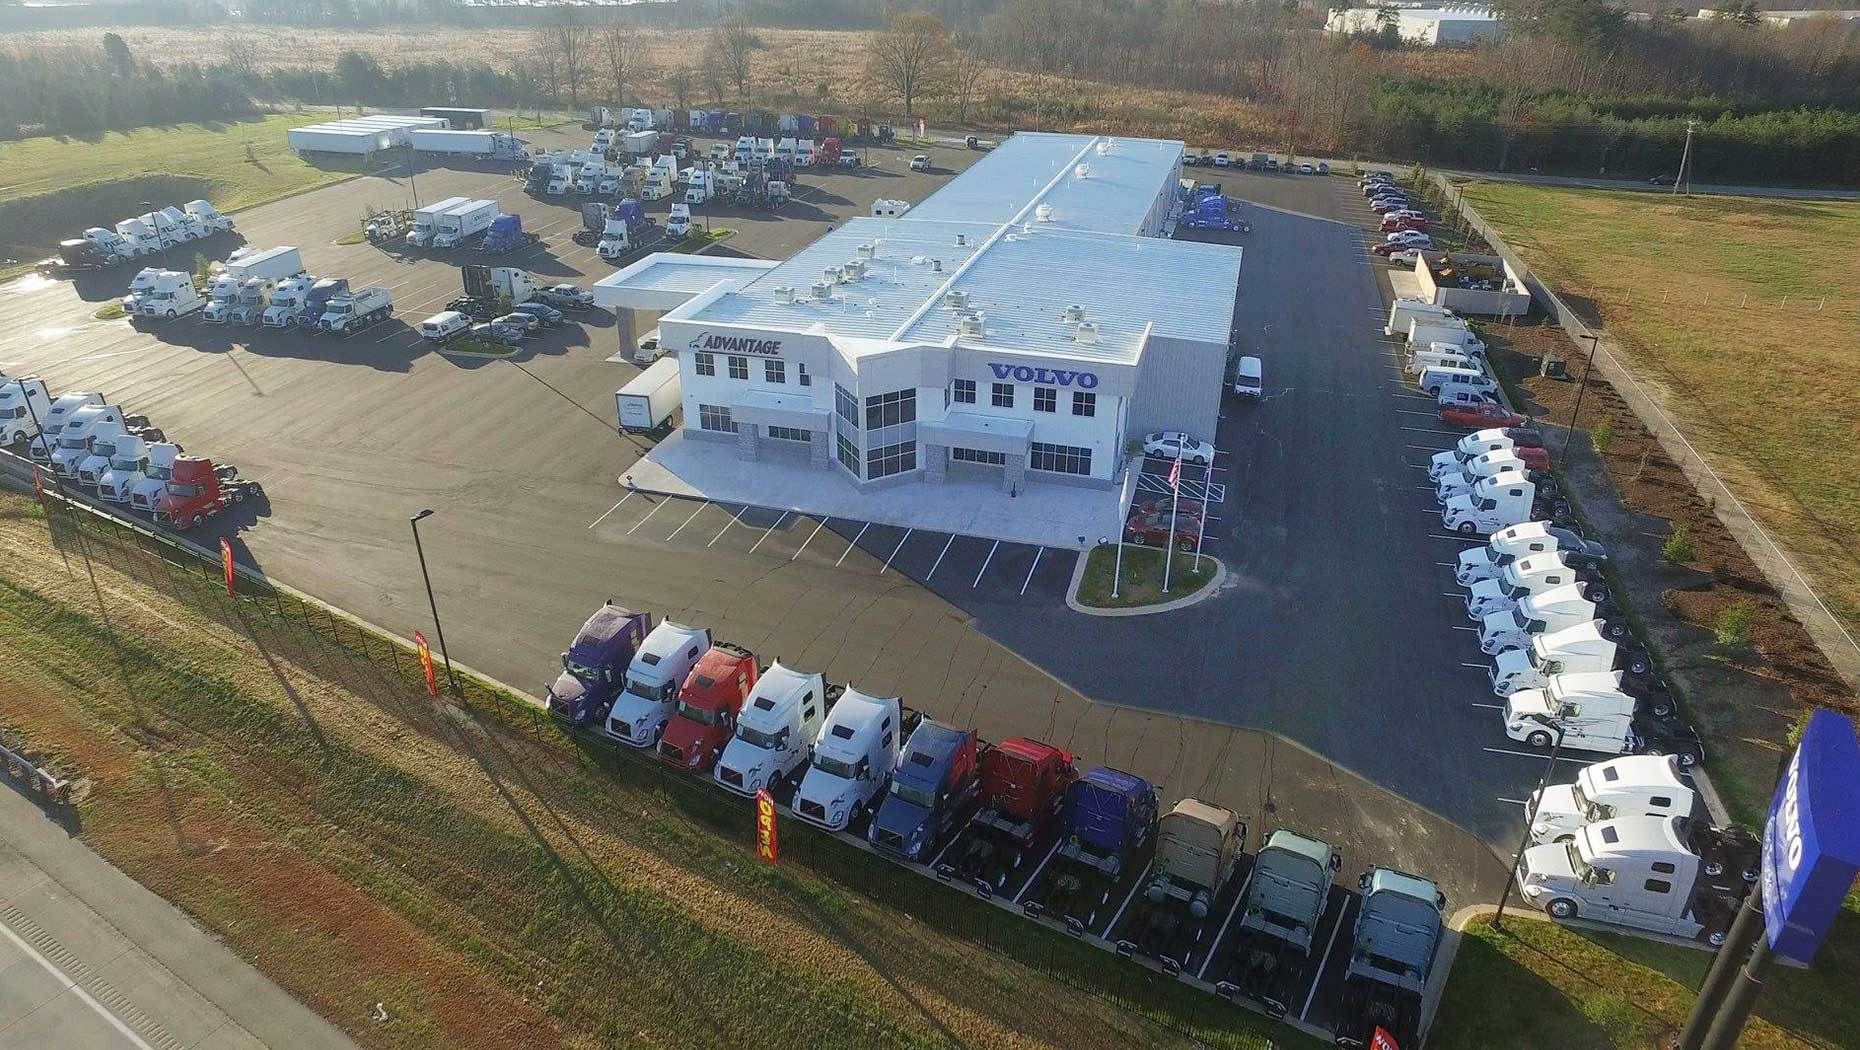 Volvo Trucks North America names Advantage Truck Center as its 2020 North American Dealer Group of the Year. Their Greensboro, North Carolina facility is shown here.